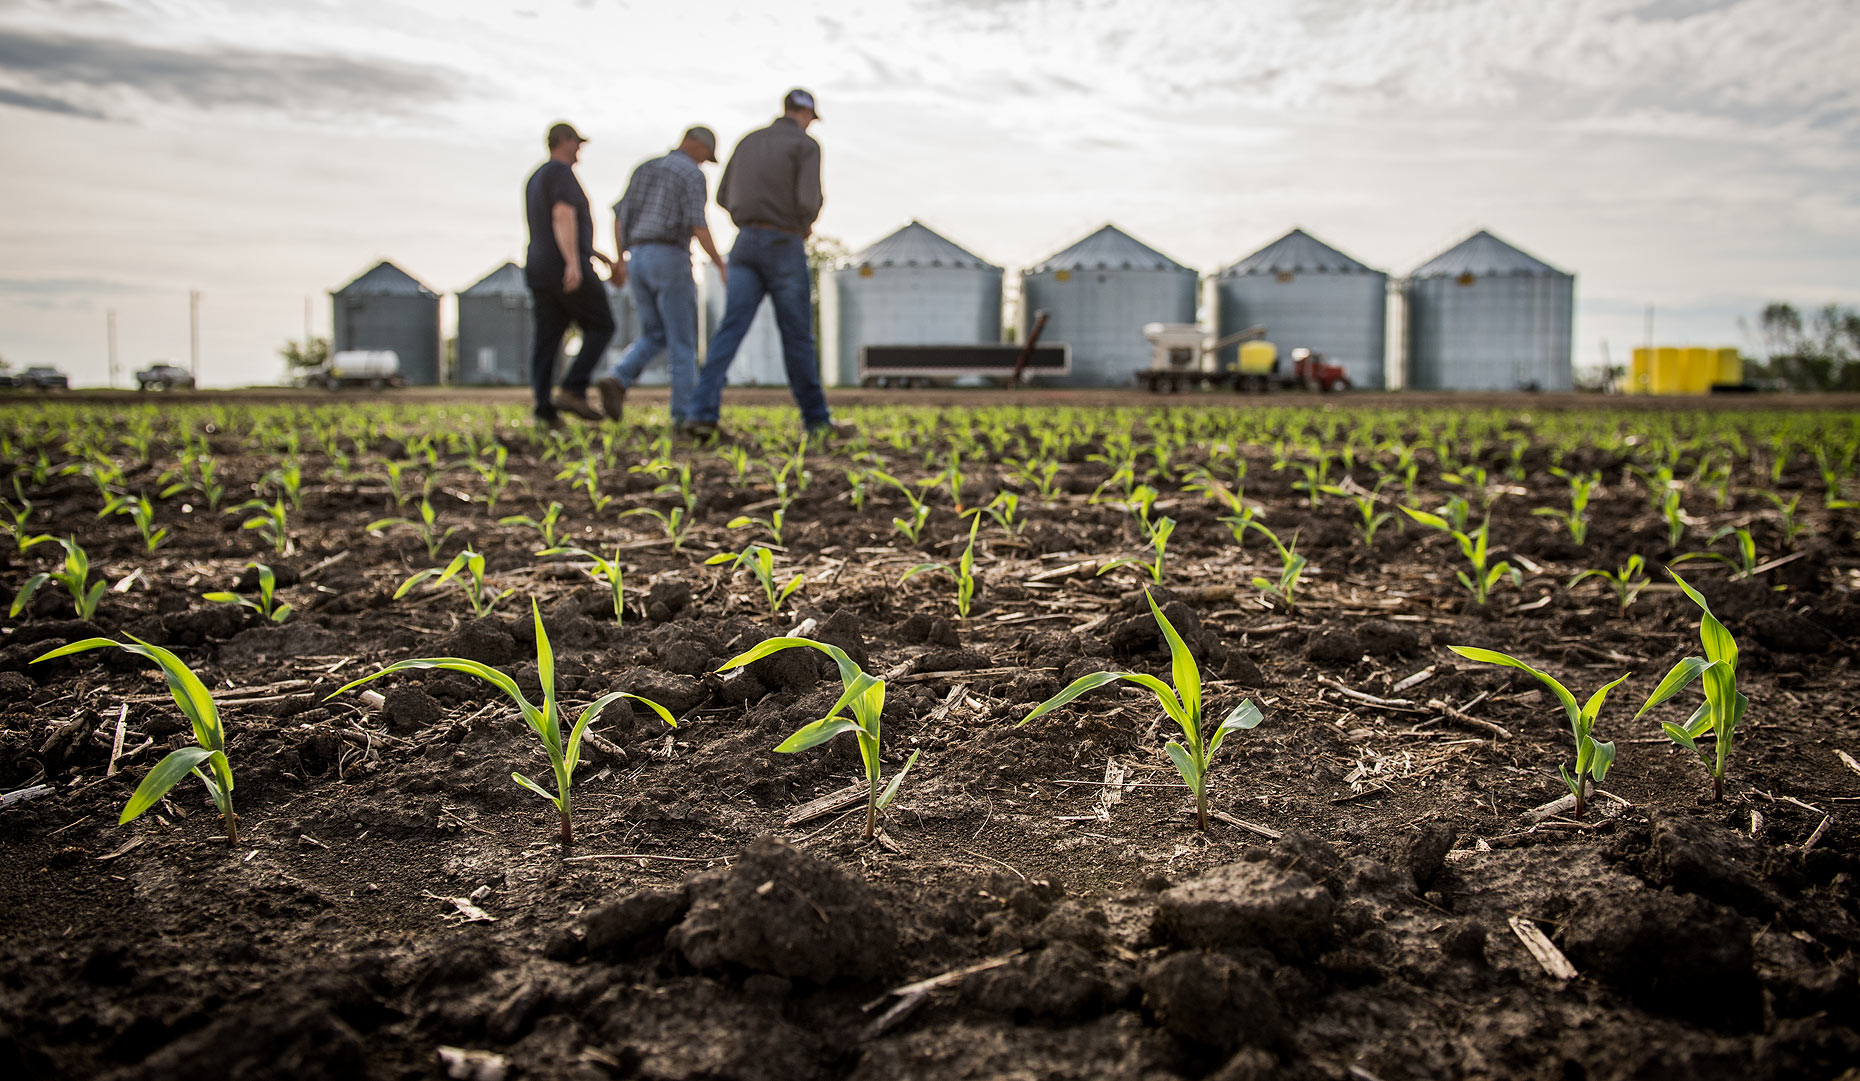 Midwest Agriculture Photographer